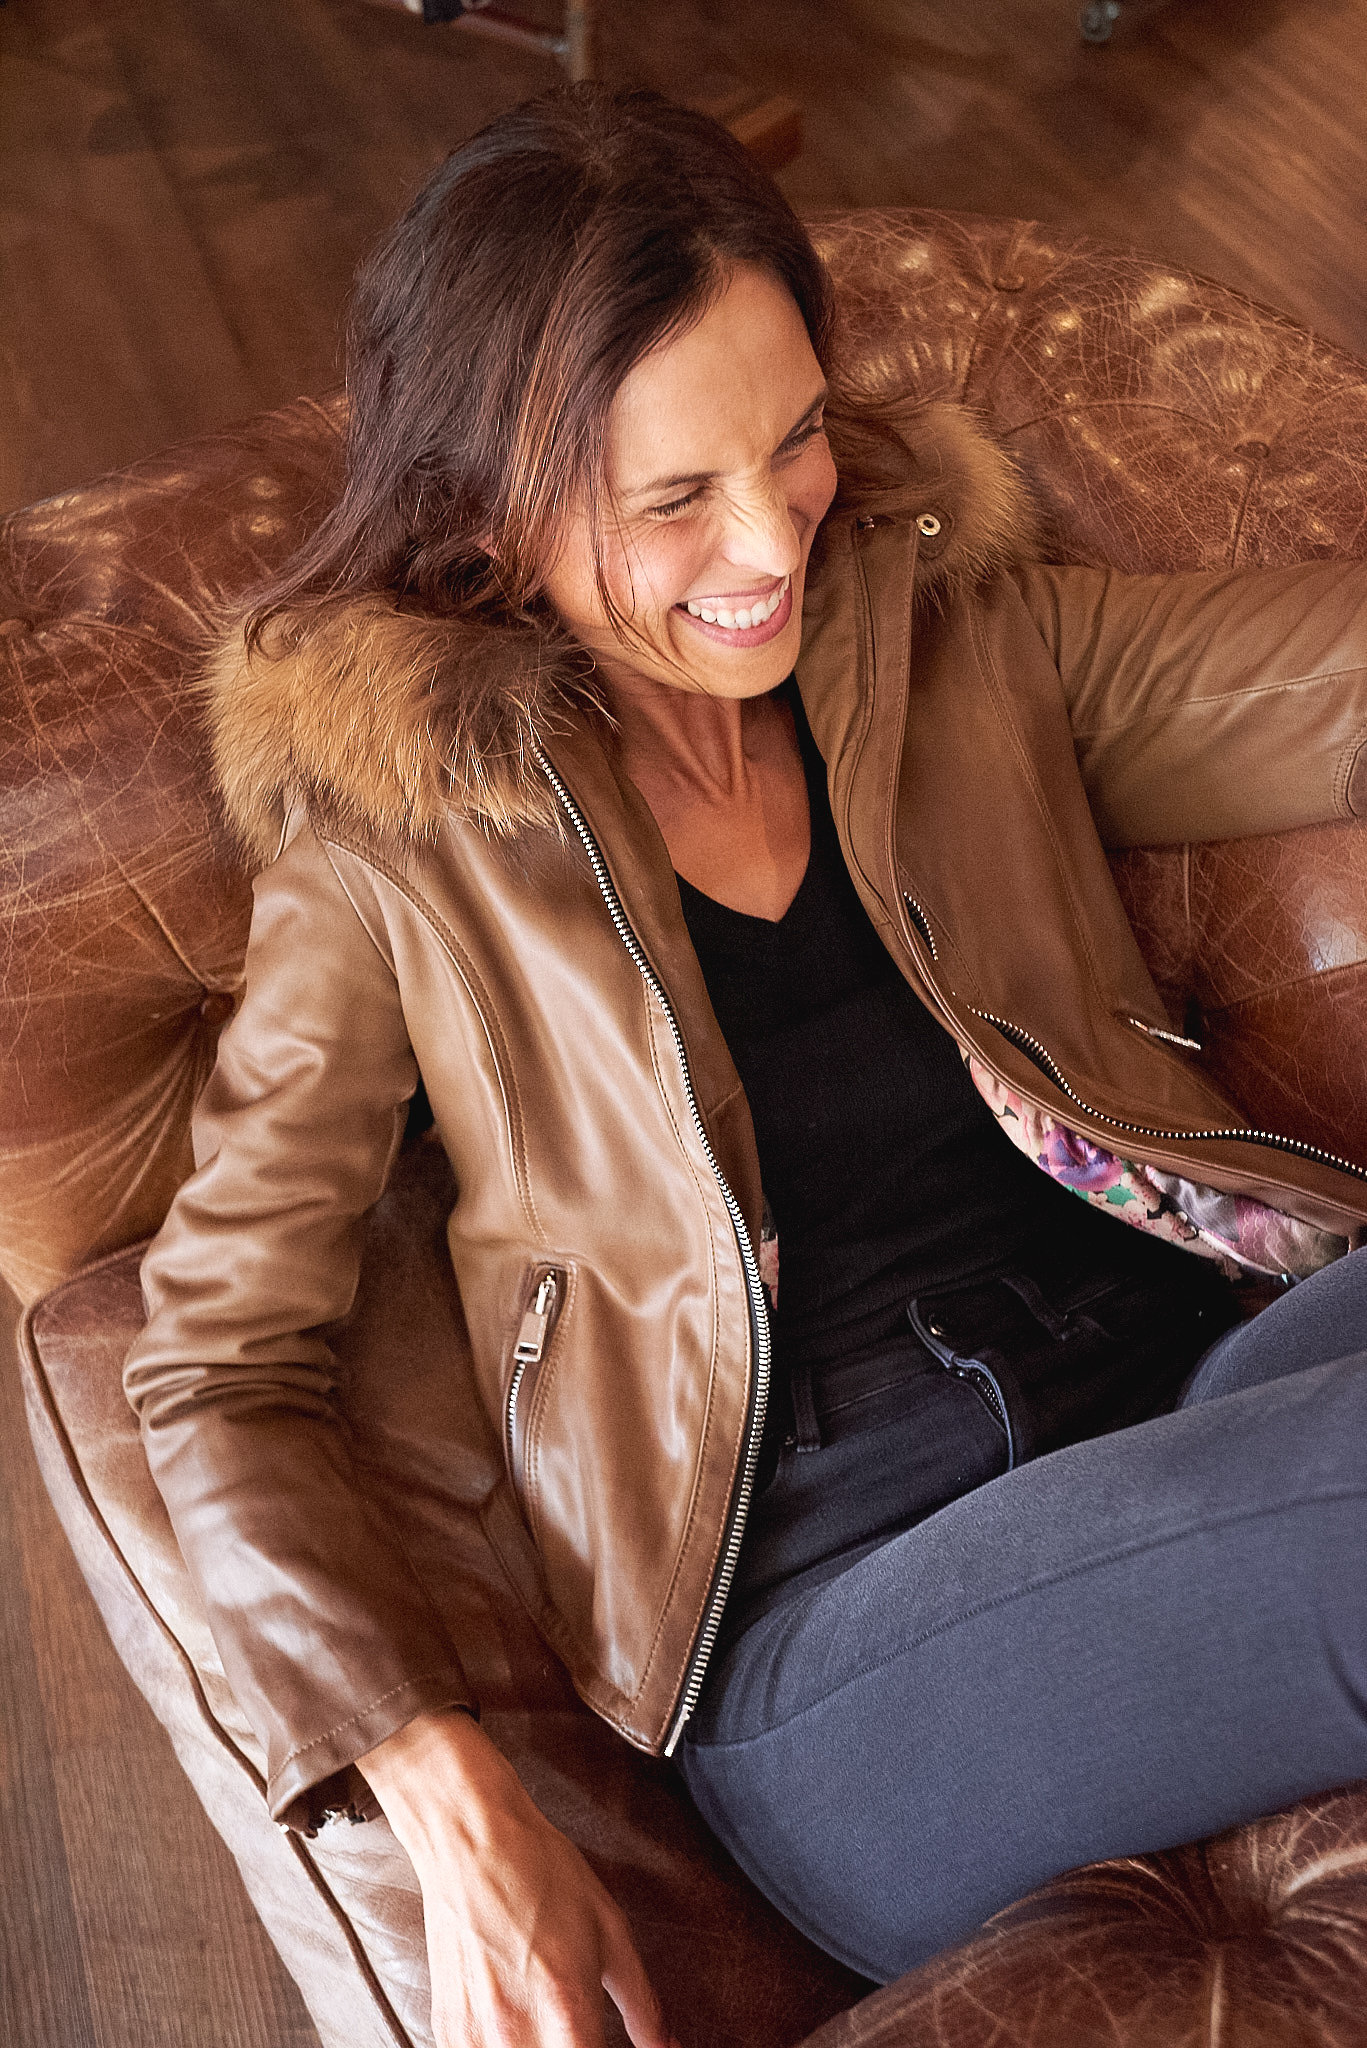 Abigail wears Delan Leather Jacket with hood, (Oil colour) $1560 and Reiko Demin, Black Jeans $219